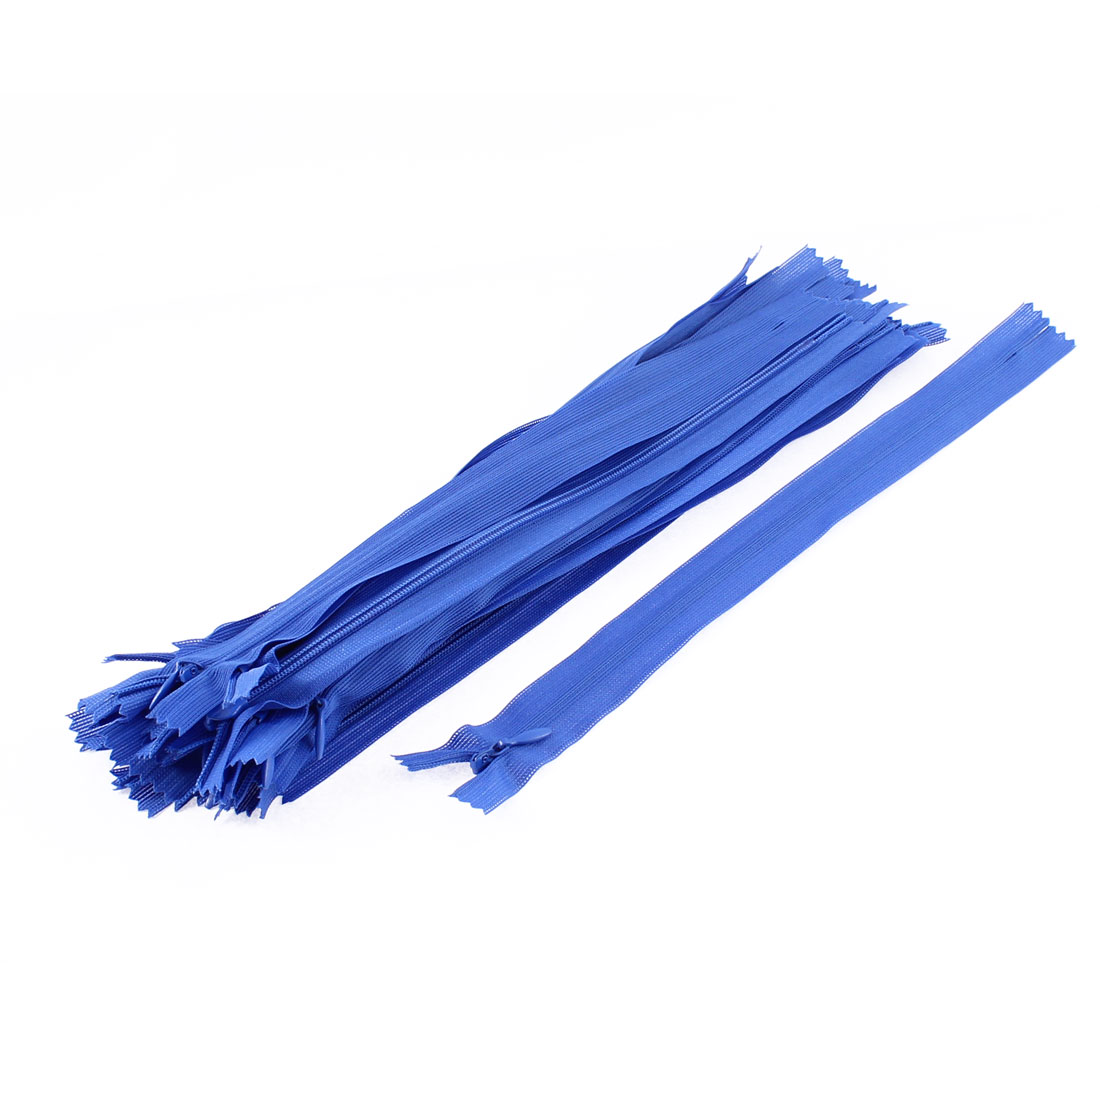 Clothes Invisible Nylon Coil Zippers Tailor Sewing Craft Tool Blue 25cm 20 Pcs